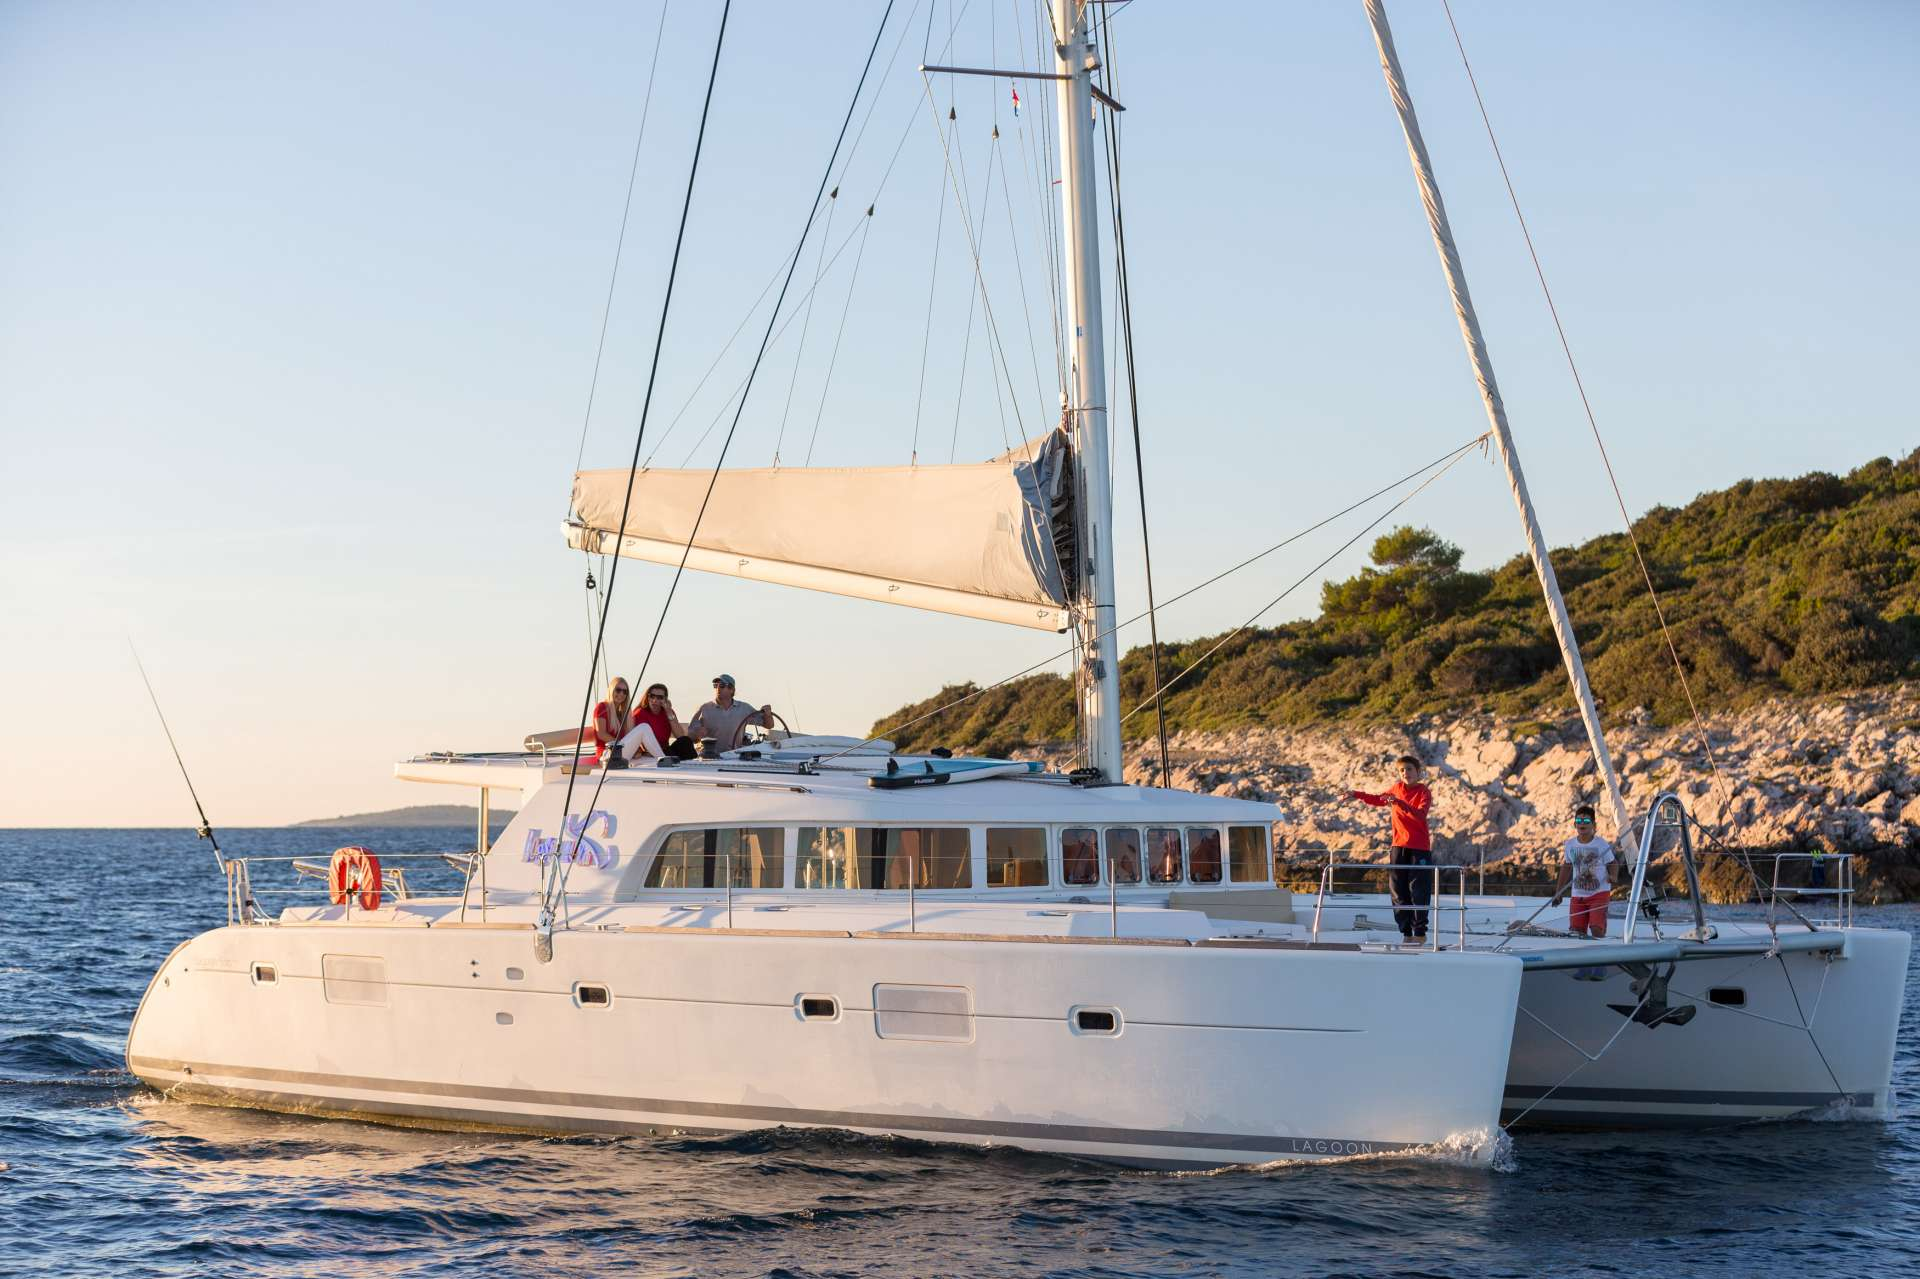 Charter with Bossa Nova on compassyachtcharters.com